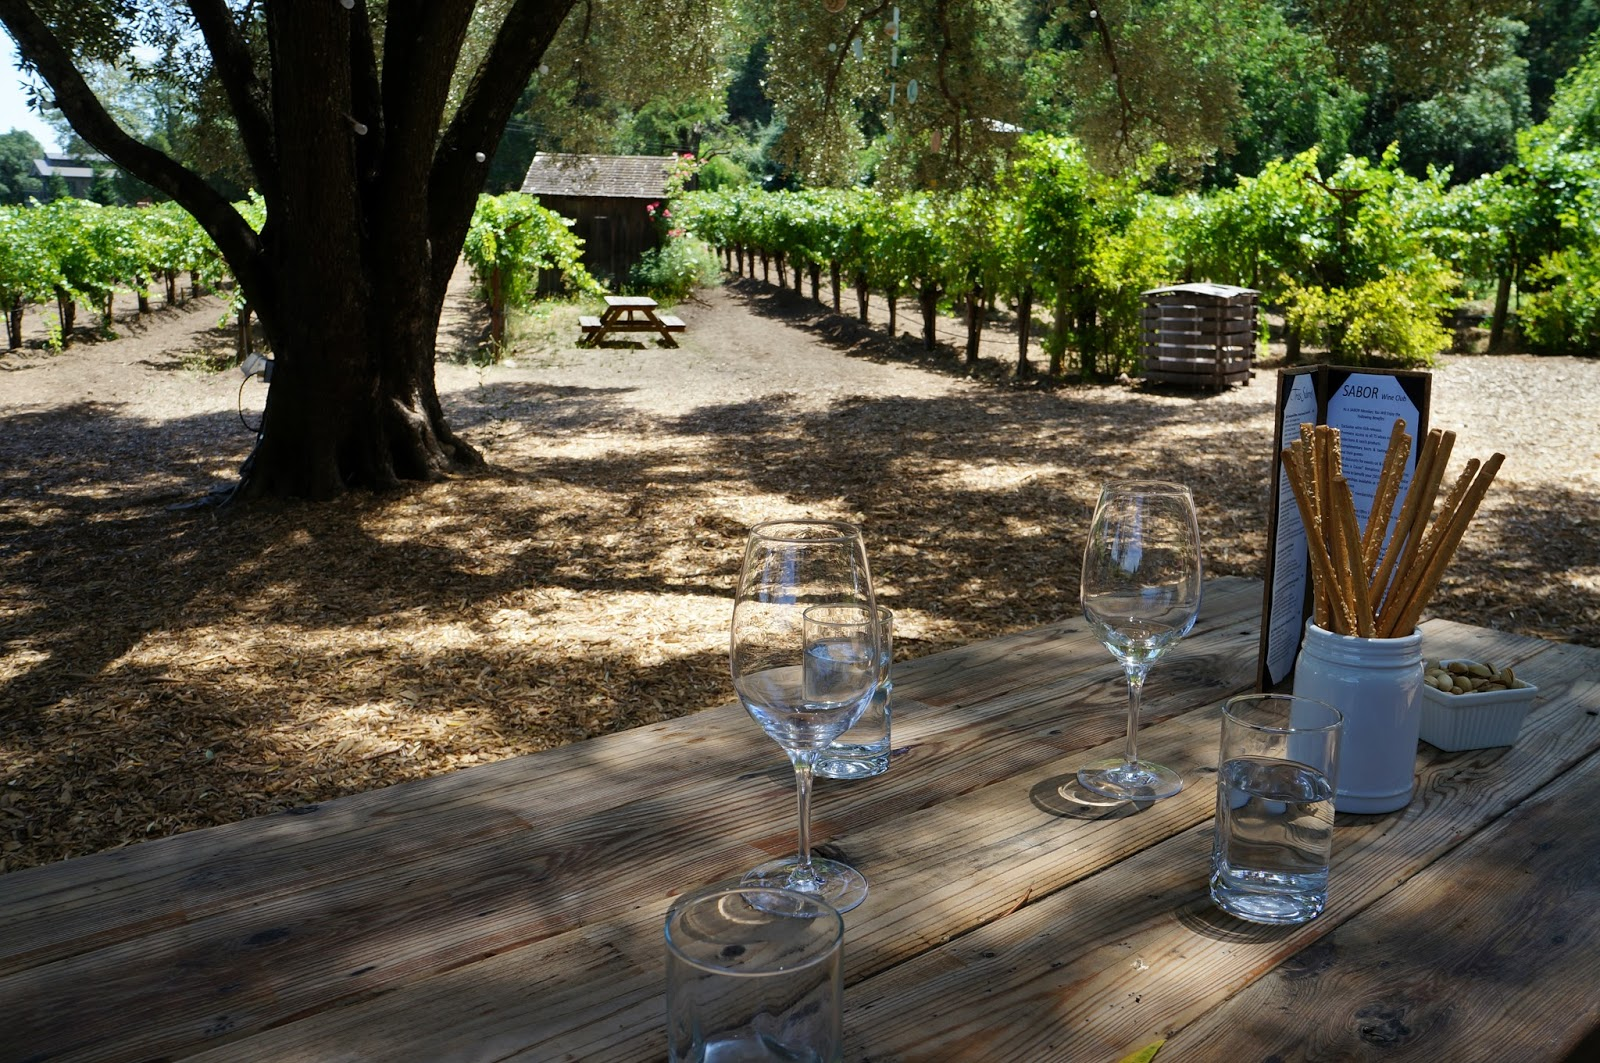 saint-helena-wine-tasting-at-tres-sabores